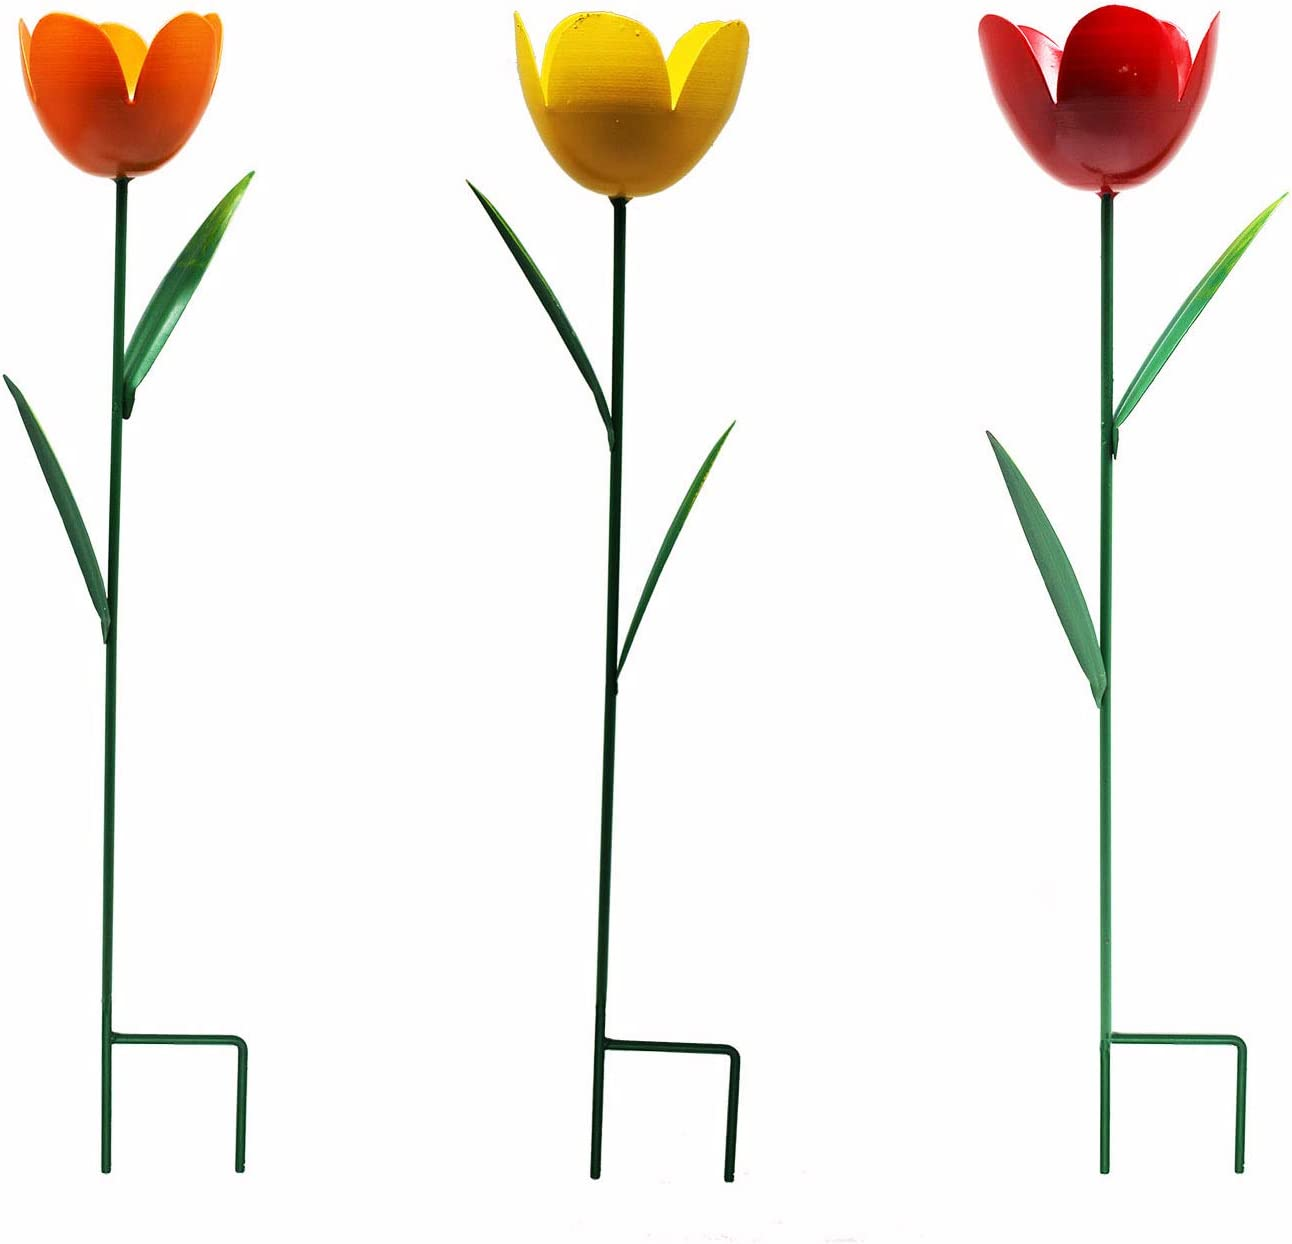 VOTENVO Tulip Floral Garden Stakes Decorations for Indoor/Outdoor Yard,Patio Plant Pot,Lawn, Flower Bed, Birthday Decoration,3 PCS